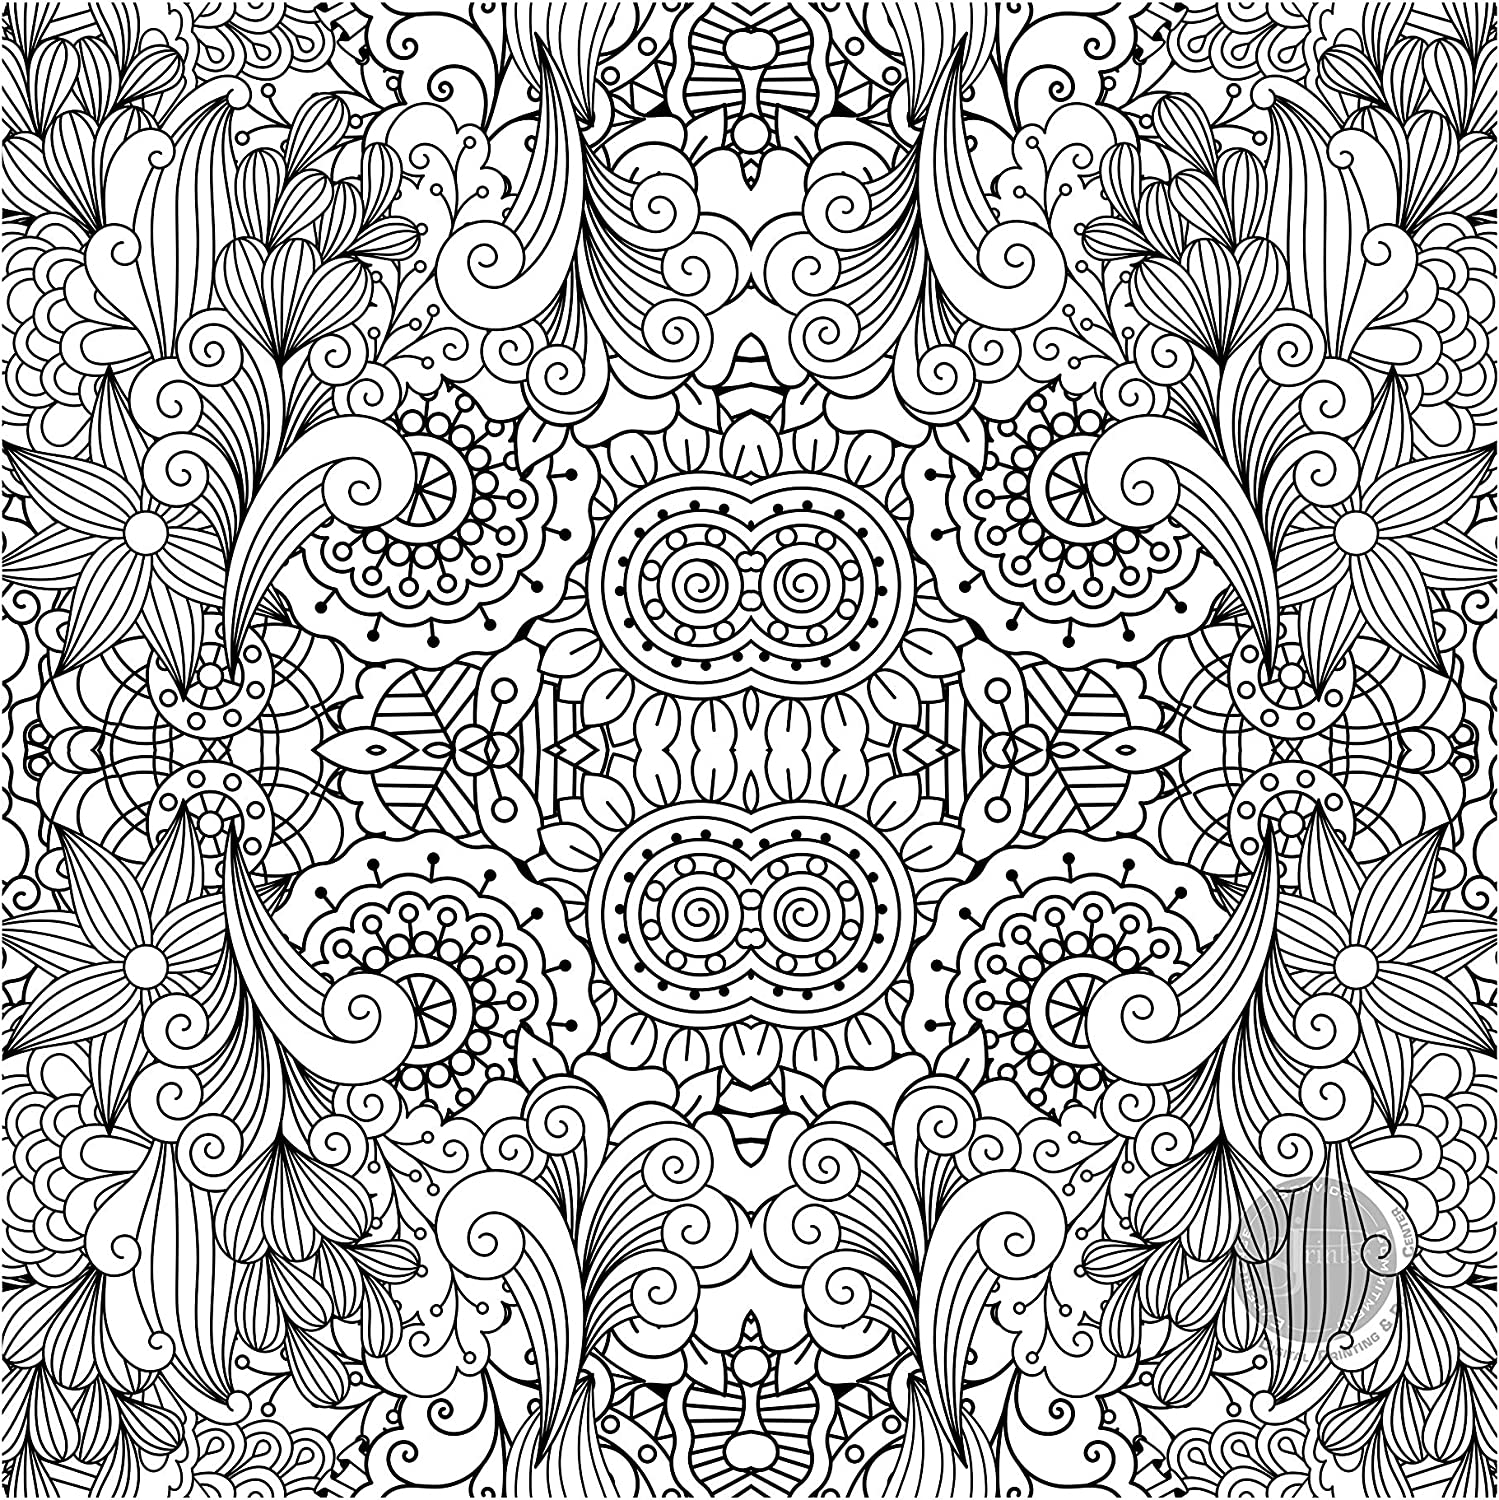 Giant Coloring Poster for Kids and Adults - Great for Care Facilities, Schools, Group and Family Activities (Square Flower Mandala, 30